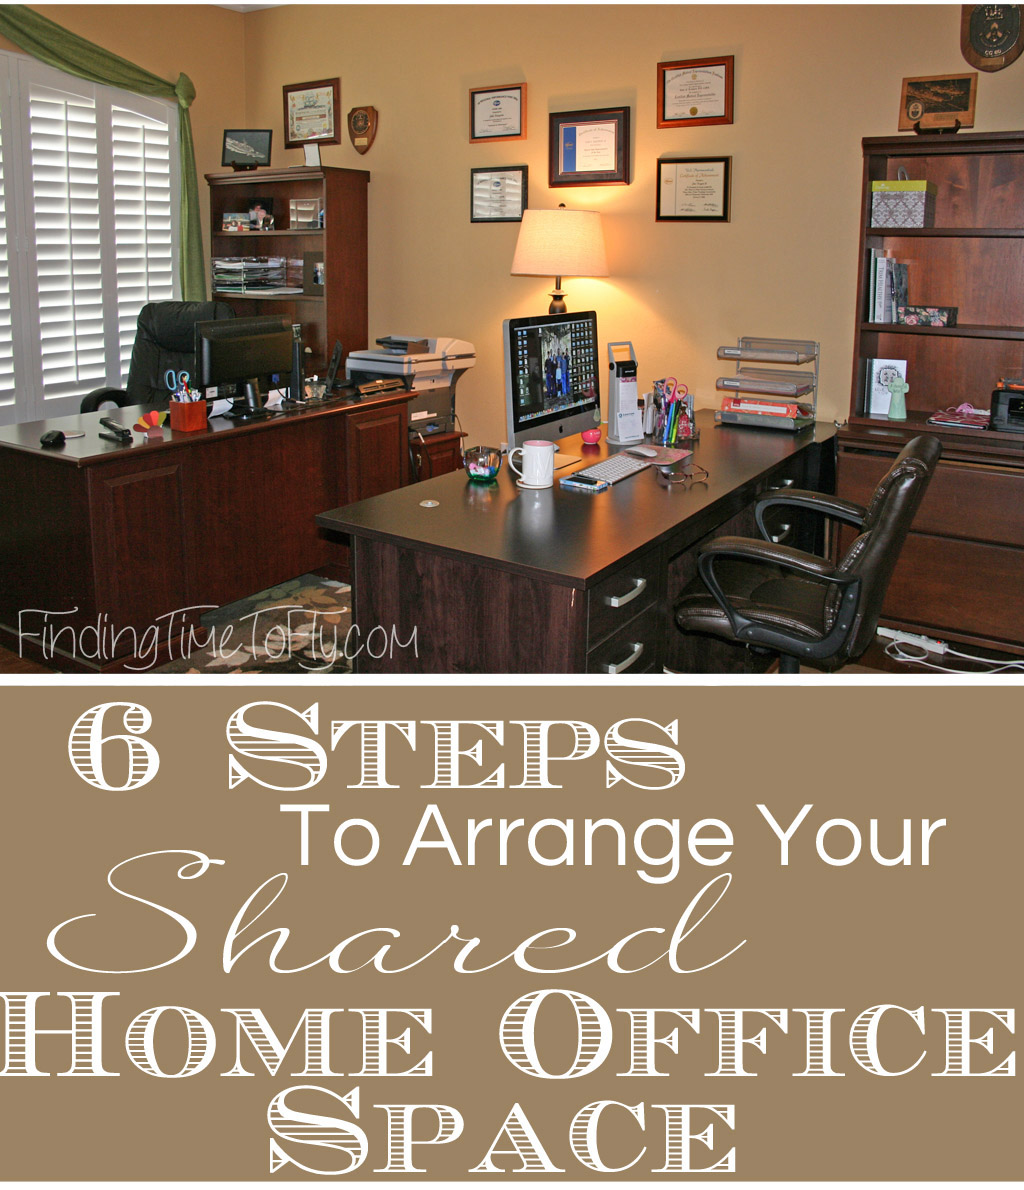 6 Steps To Arrange Your Shared Home Office Space